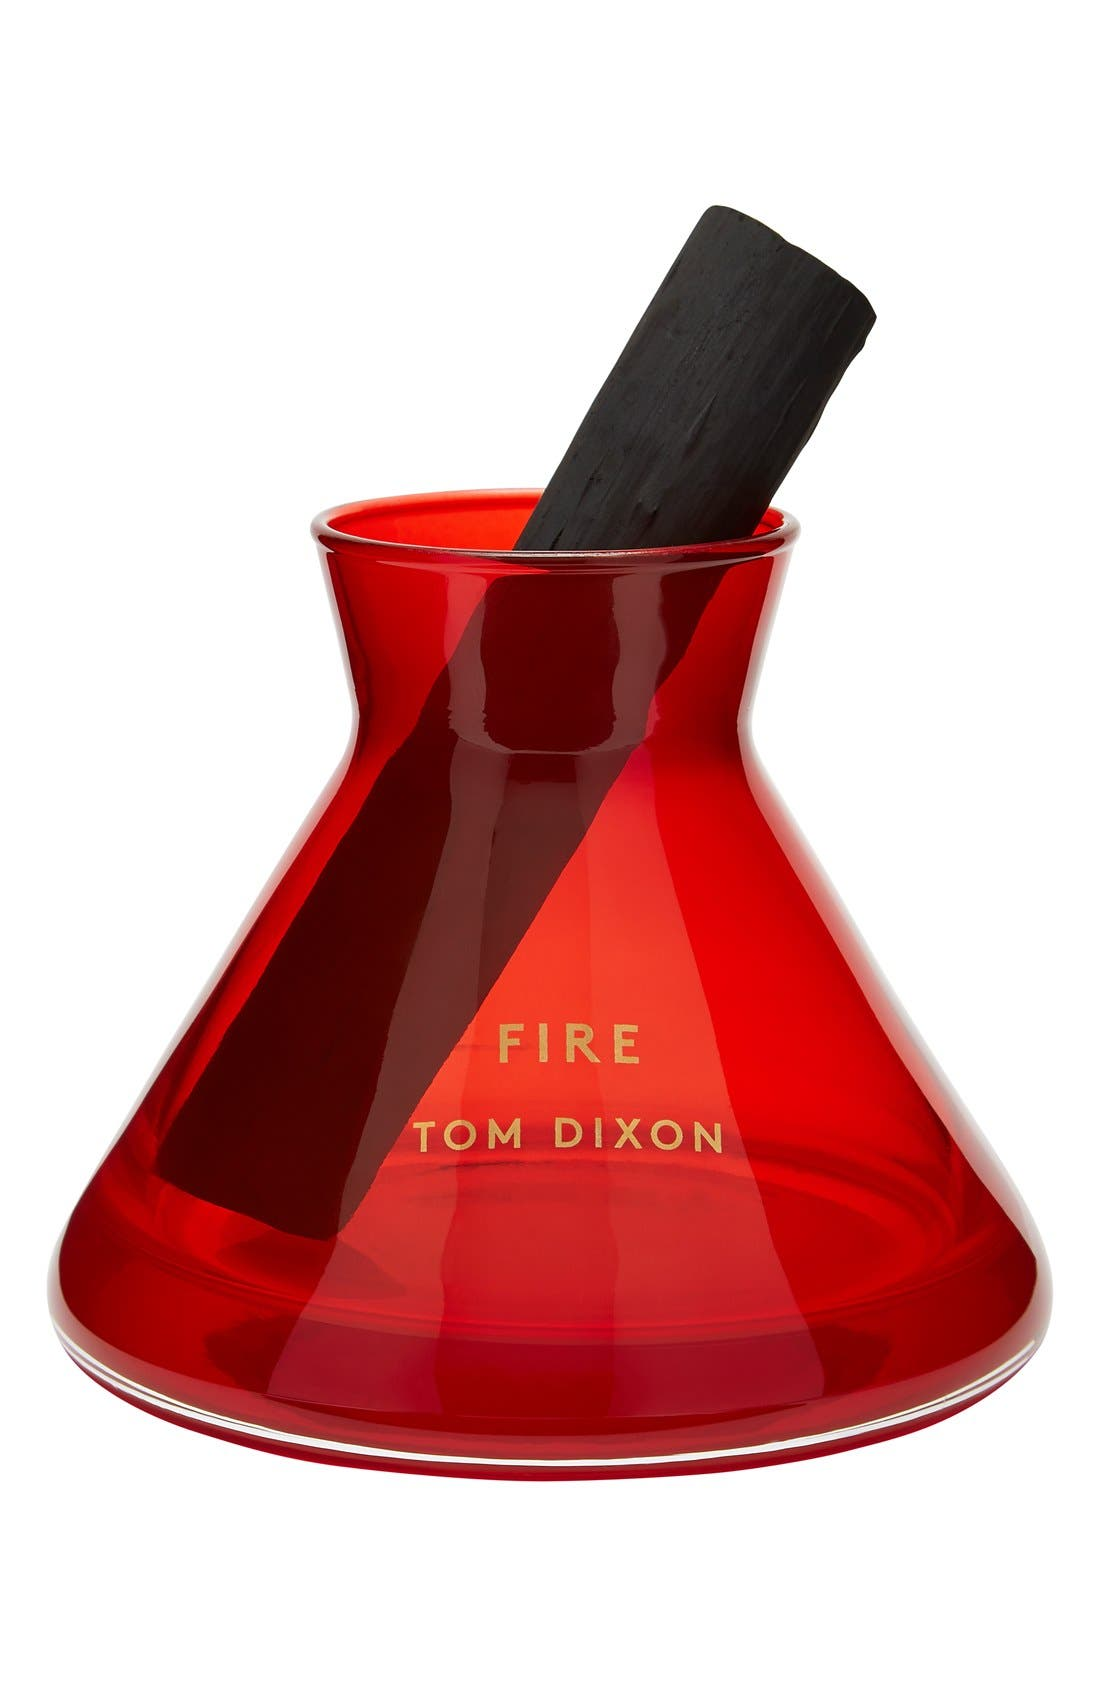 Alternate Image 1 Selected - Tom Dixon 'Fire' Charcoal Stick Diffuser